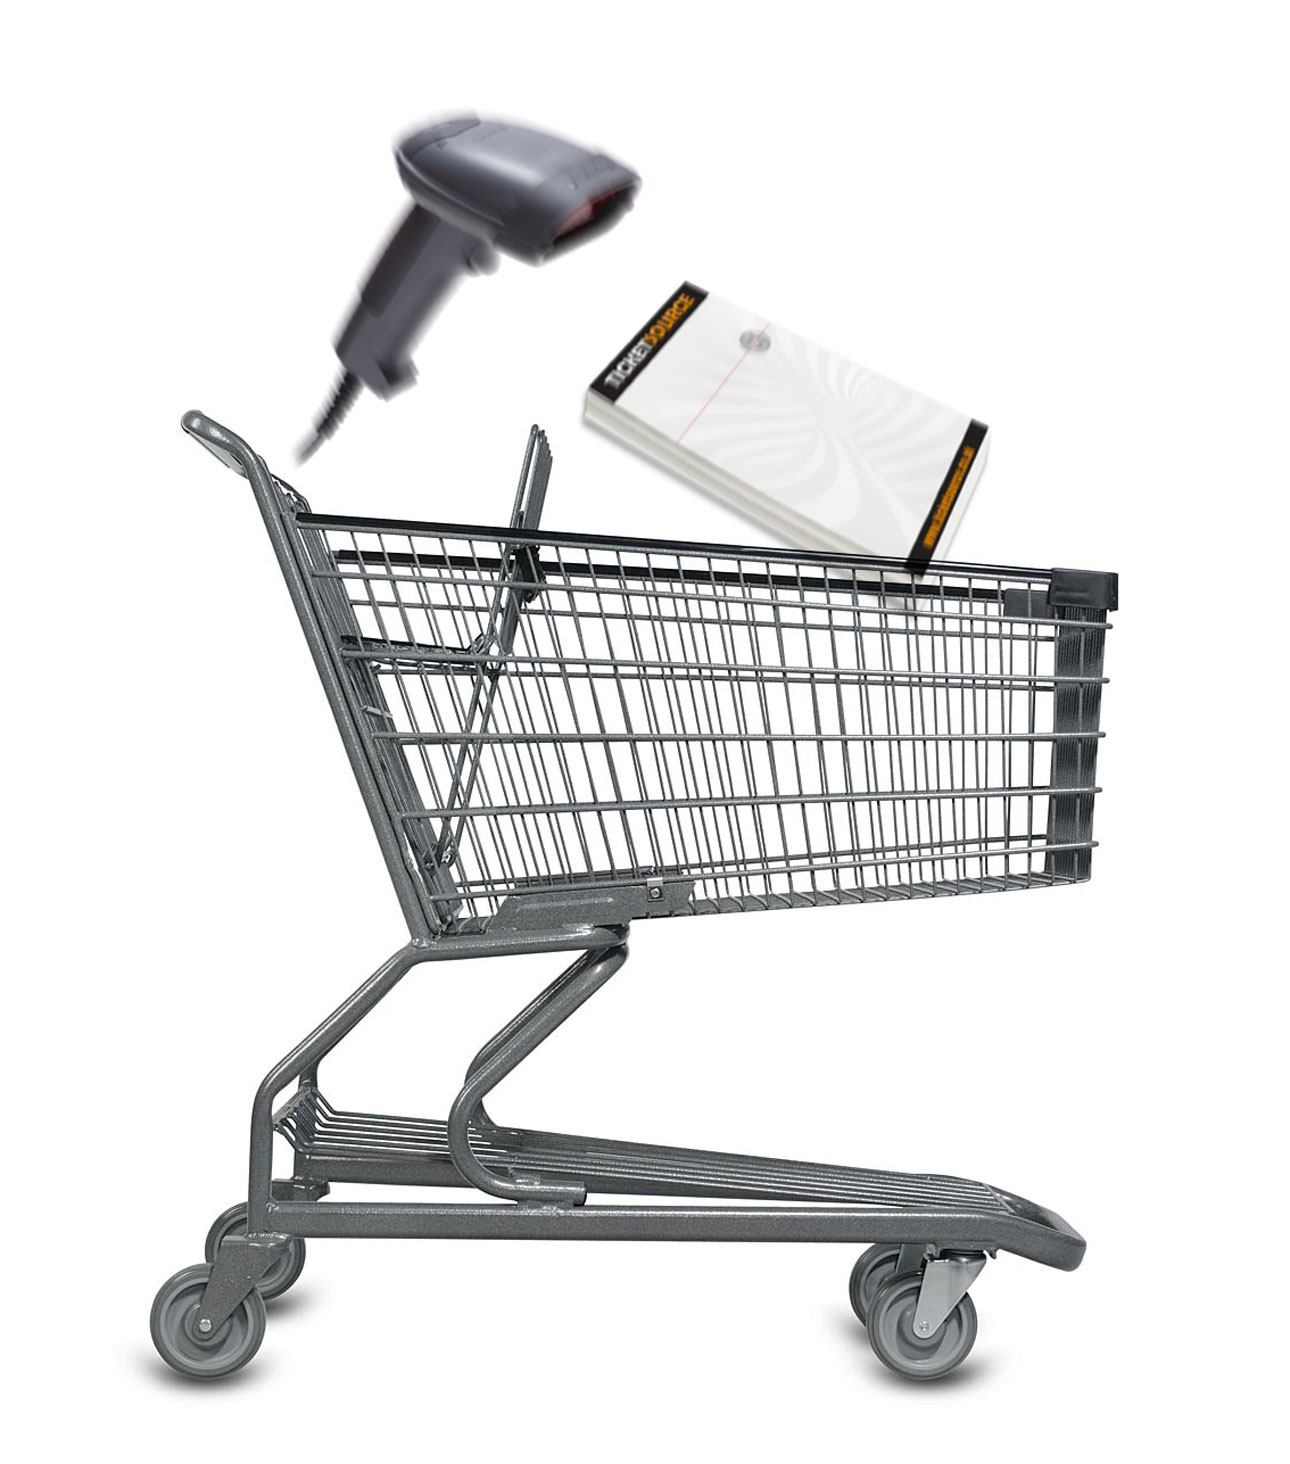 concept image of buying your add-ons